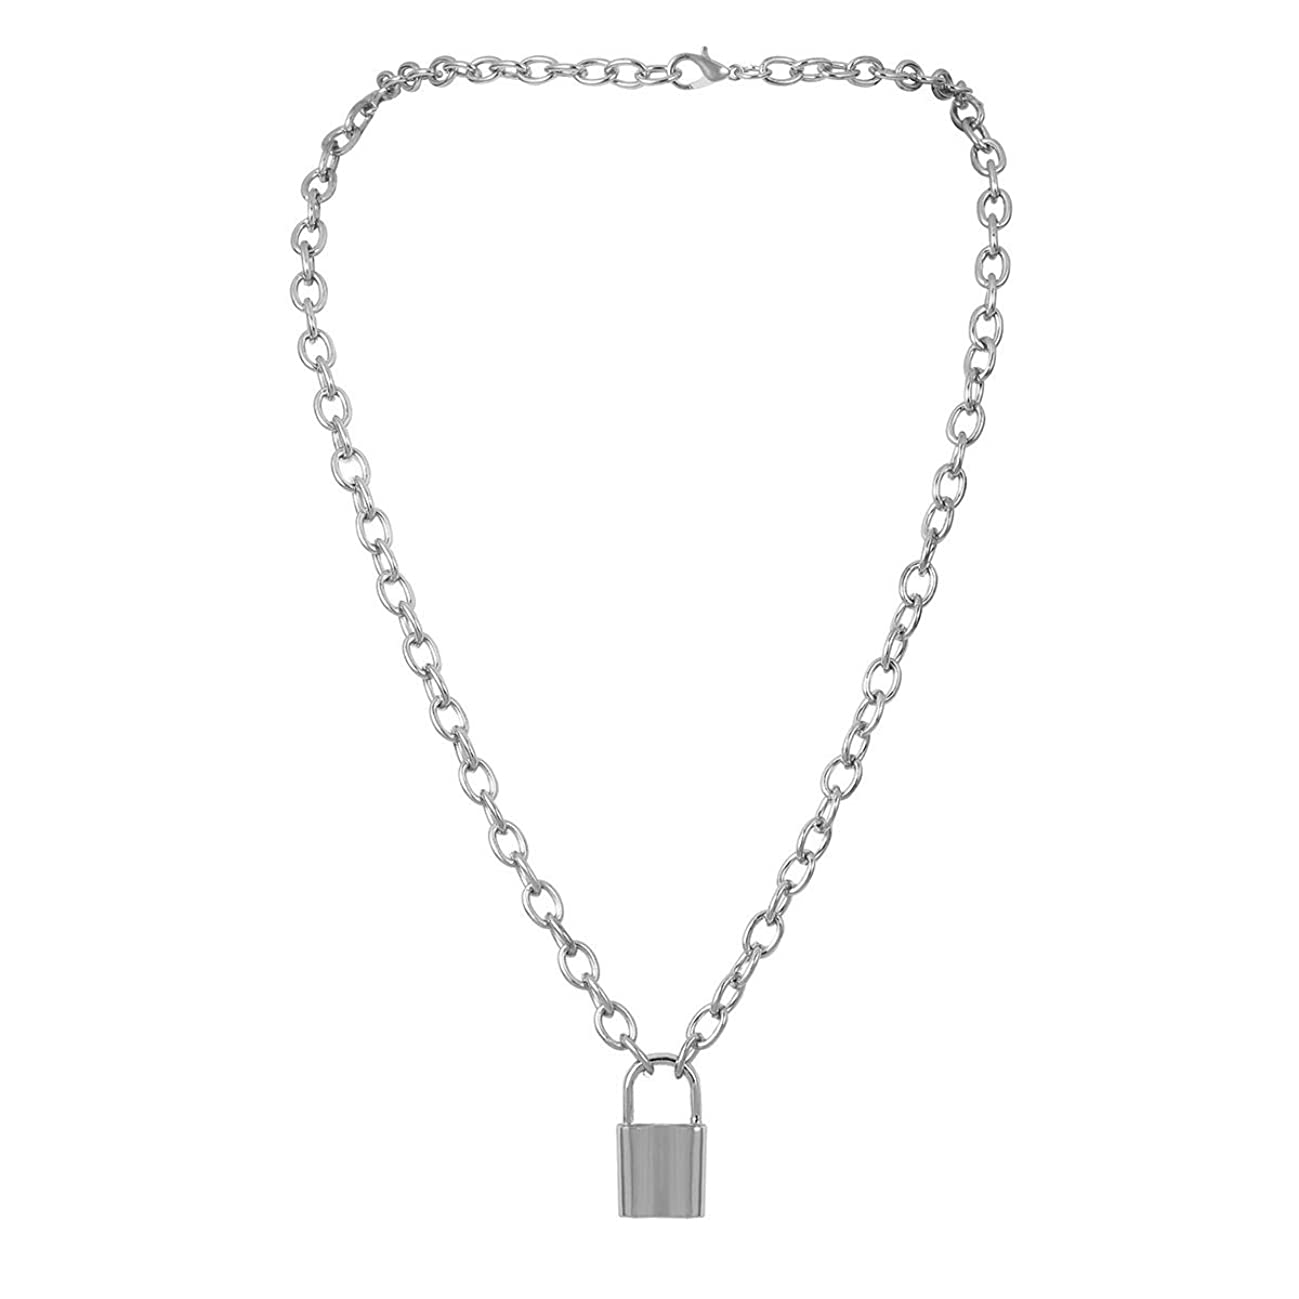 Krun Lock Necklace Y Pendant Simple Cute Necklaces Long Multilayer Chain Fashion Jewelry Women Girls Gift for Her